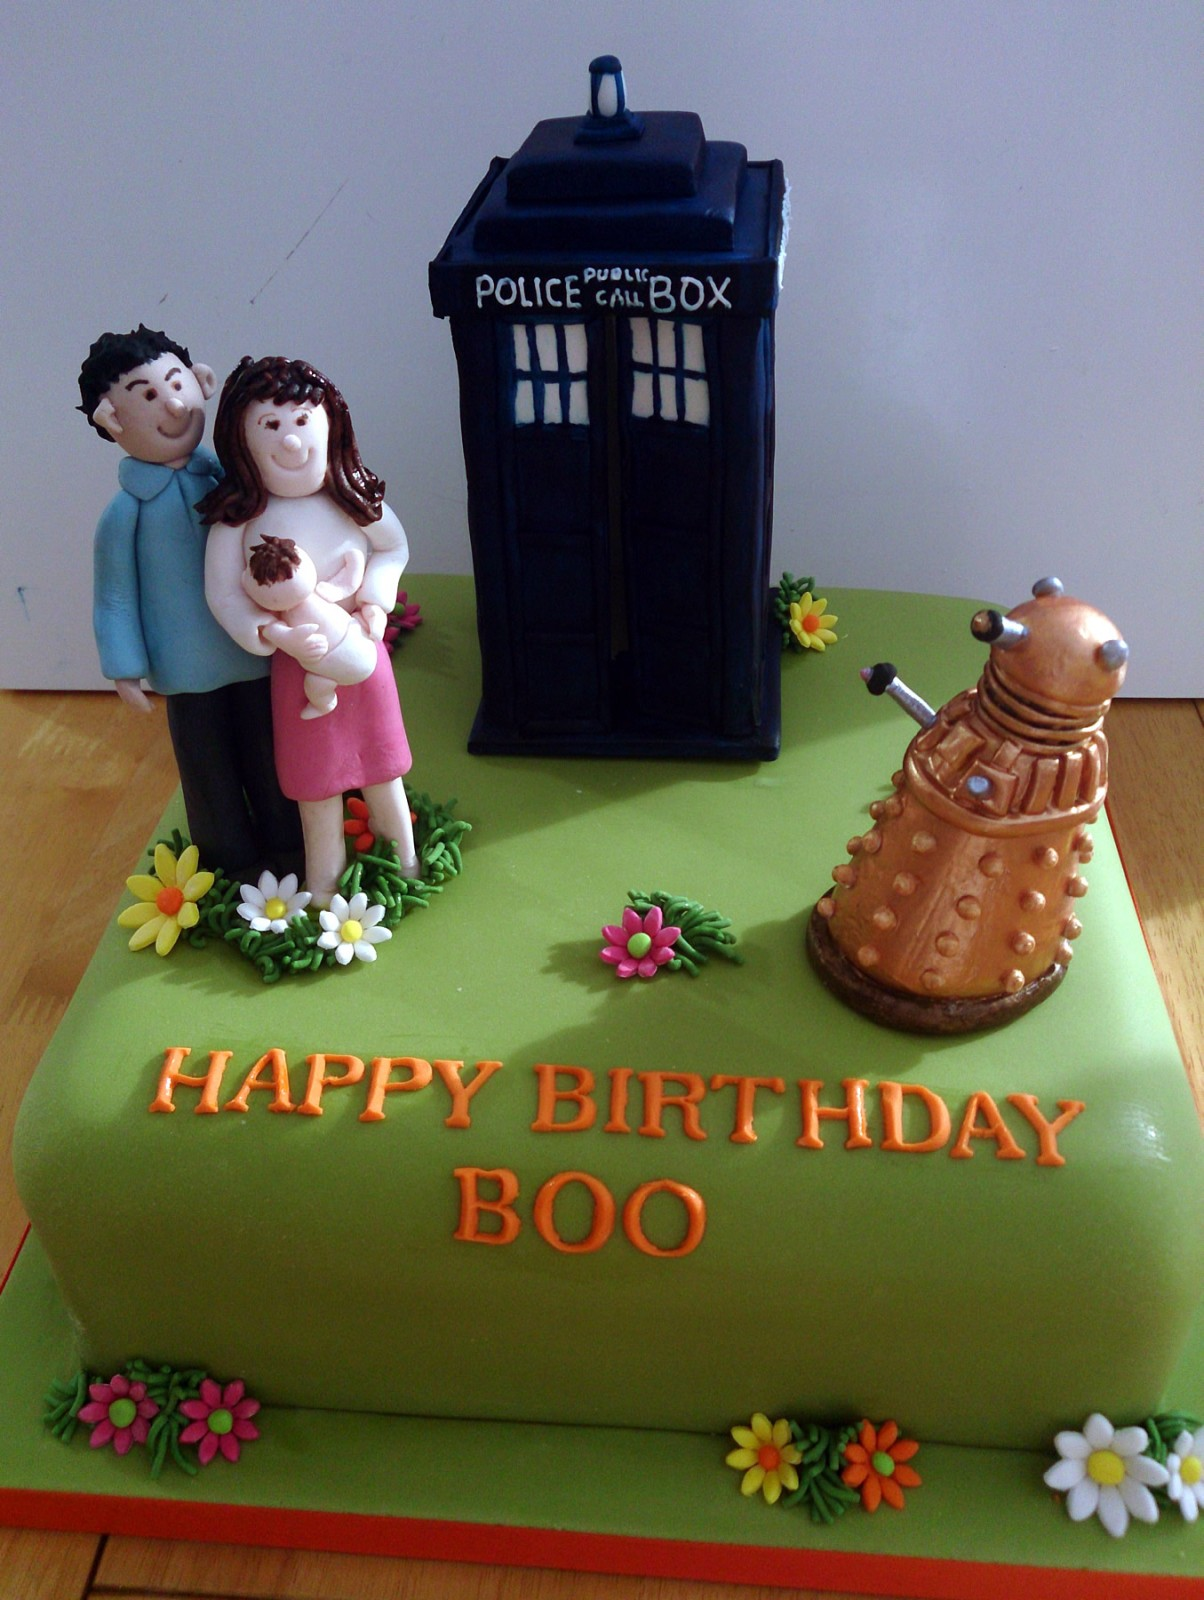 Tremendous Dr Who Tardis And Dalek Novelty Birthday Cake Susies Cakes Funny Birthday Cards Online Inifofree Goldxyz